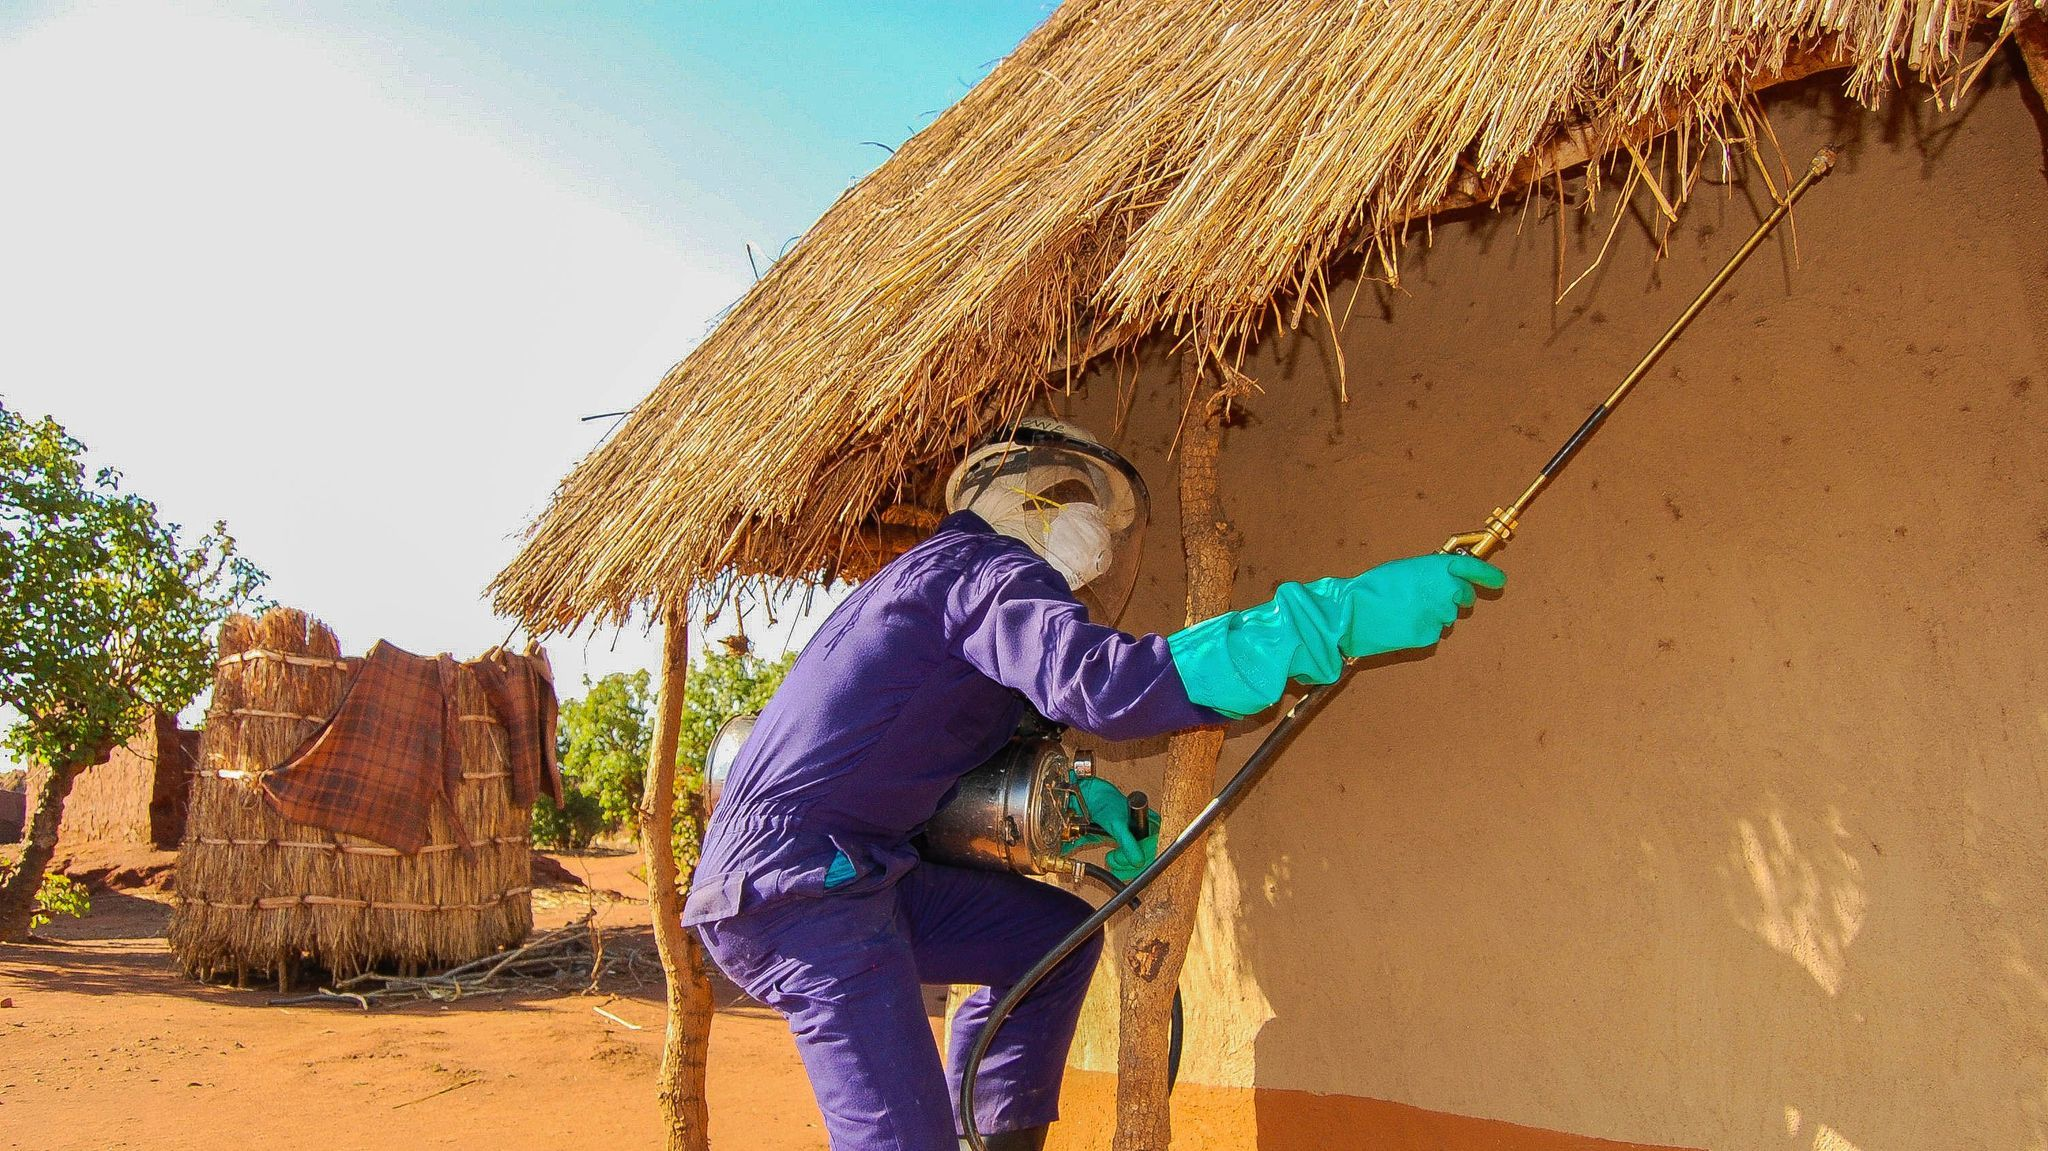 An insecticide sprayer treats a hut.